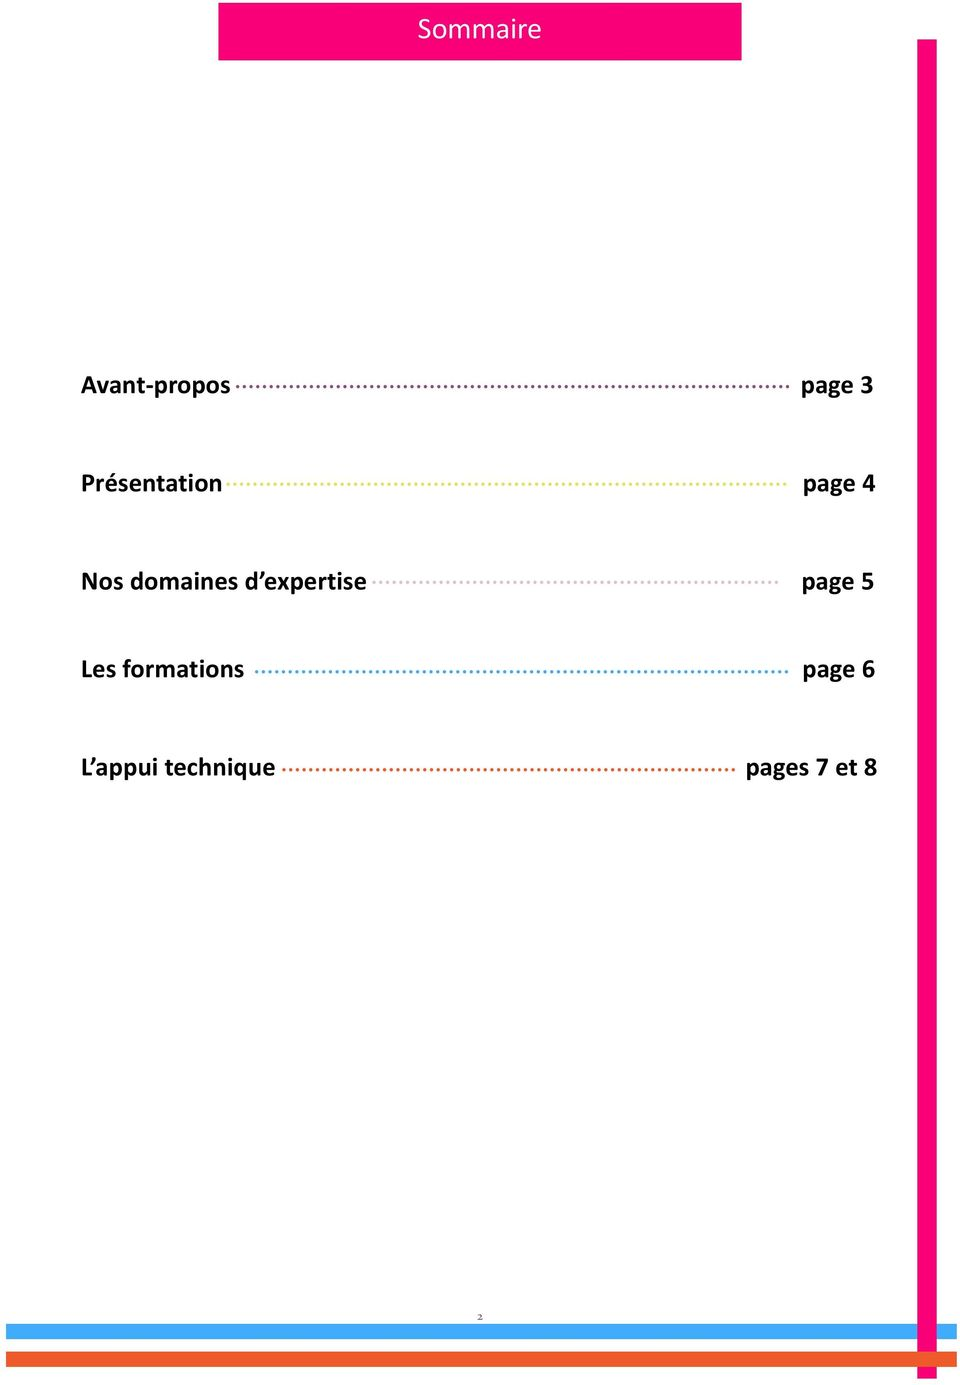 d expertise page 5 Les formations